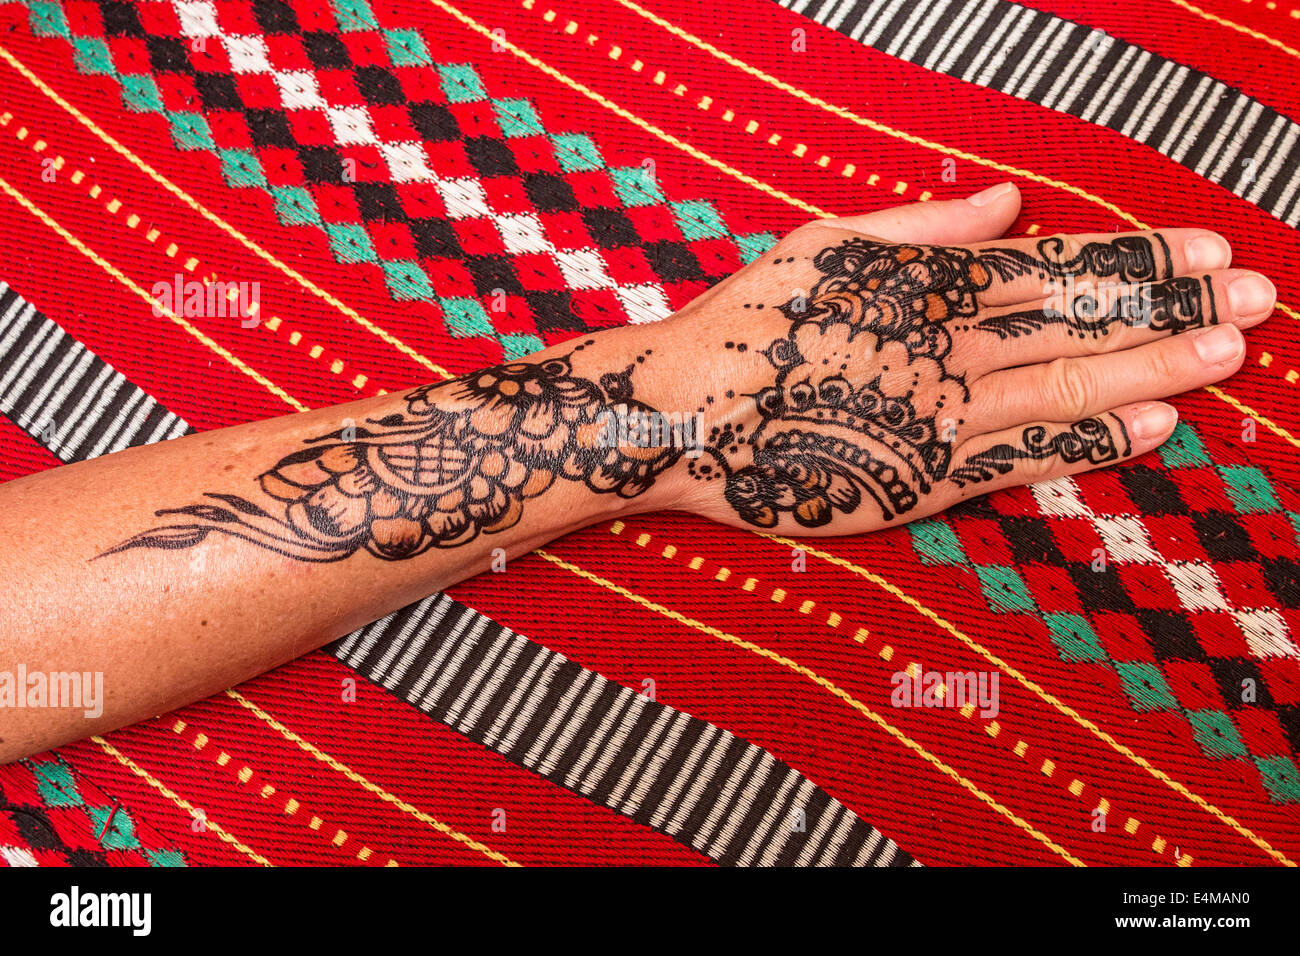 Colorful and intricate henna tattoo on a woman's hand and arm. This is a popular decoration for women in the - Stock Image